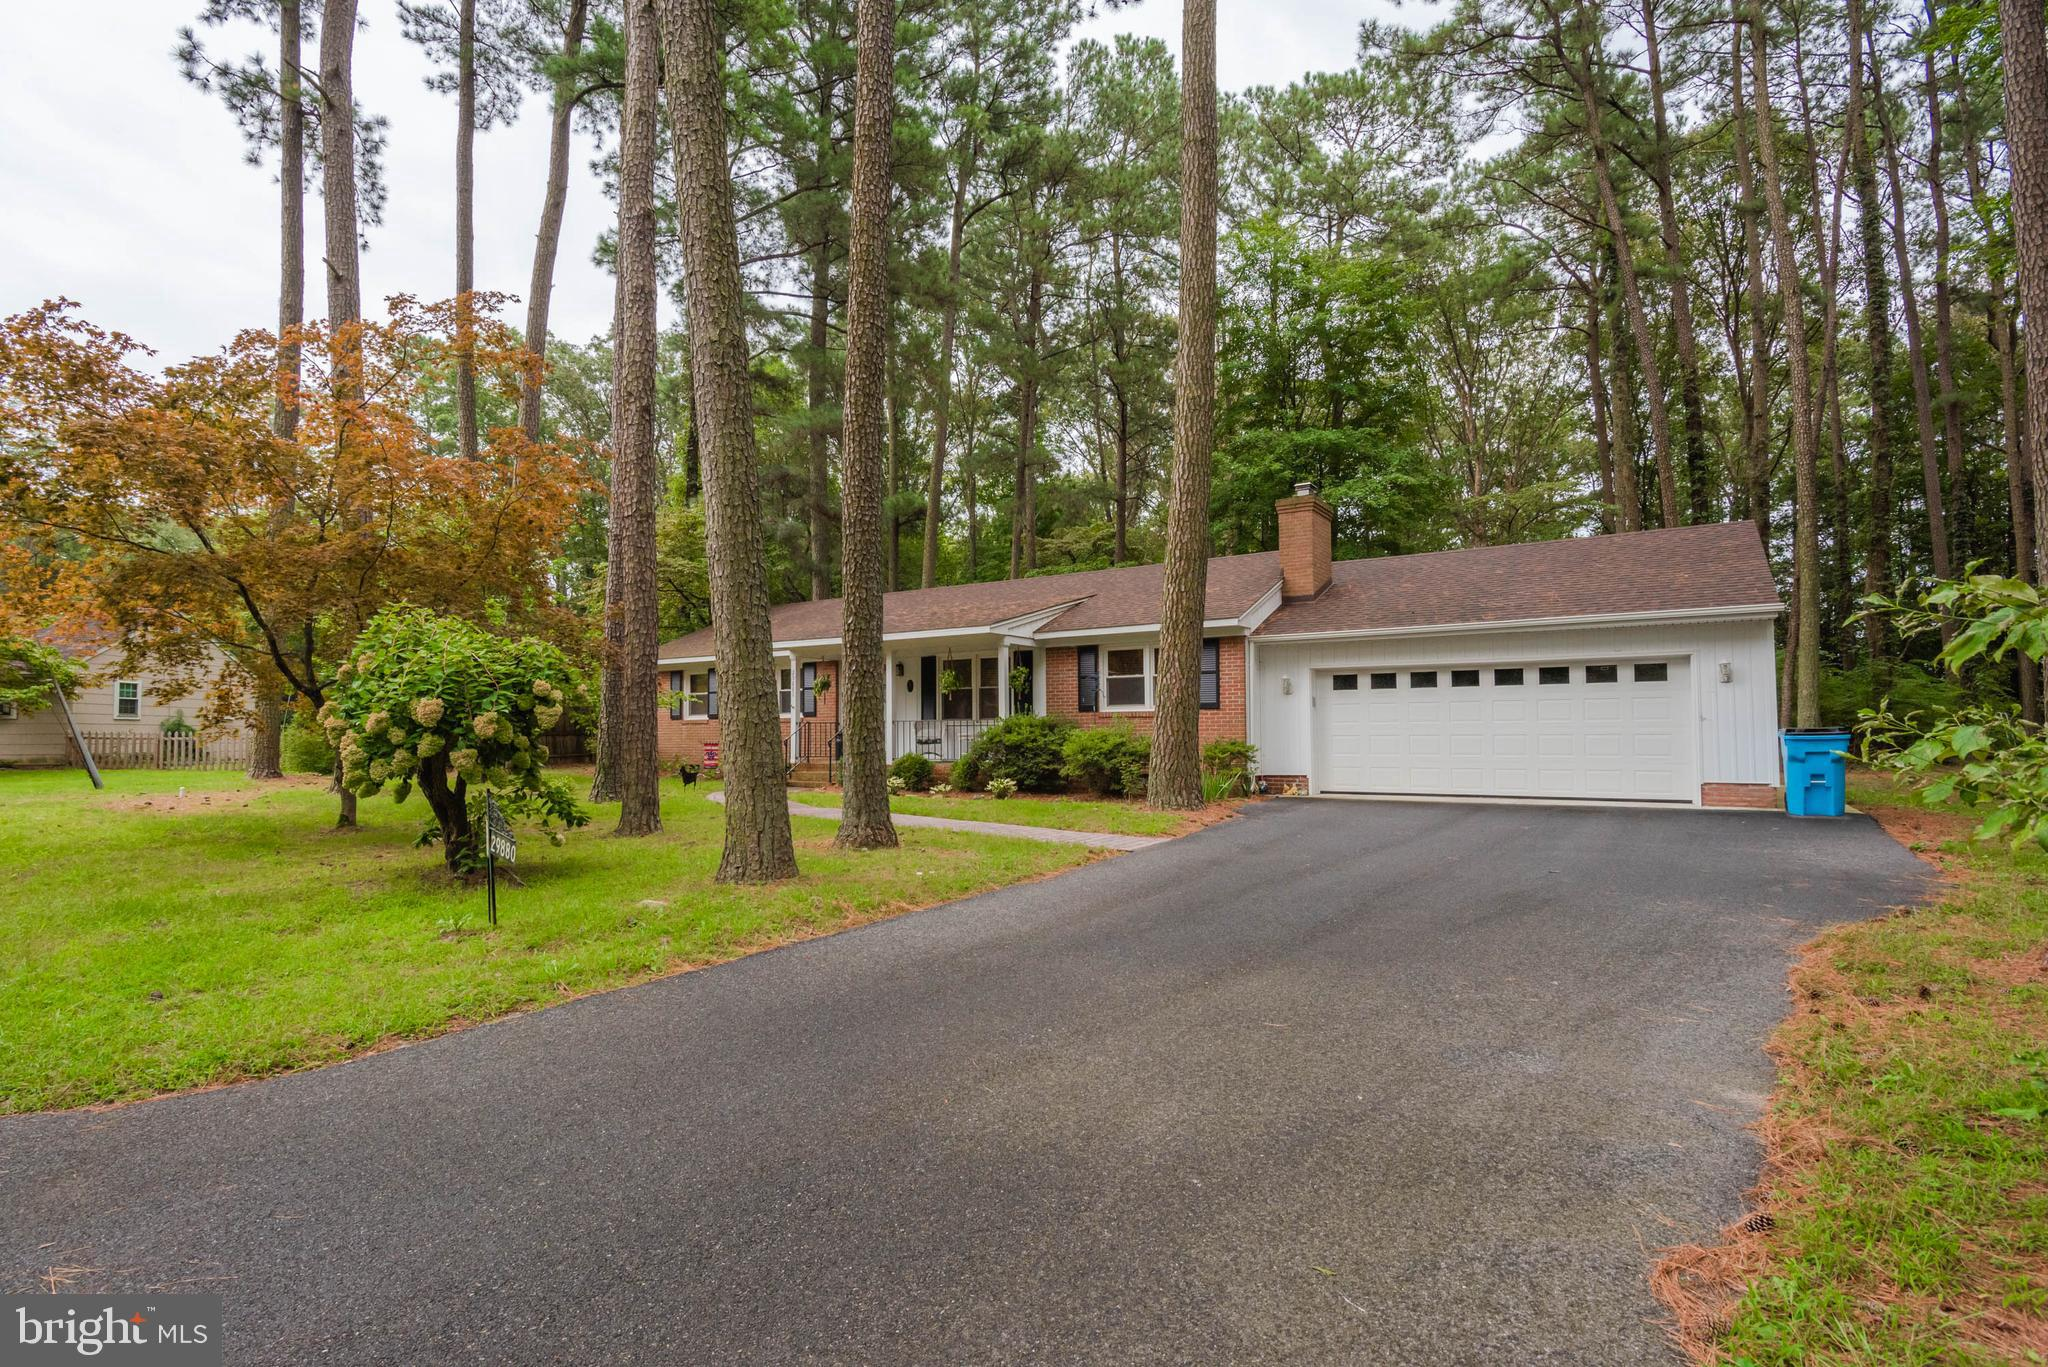 Have you ever wanted heated floors? This home has them. Do you want a home with young roof? This hom